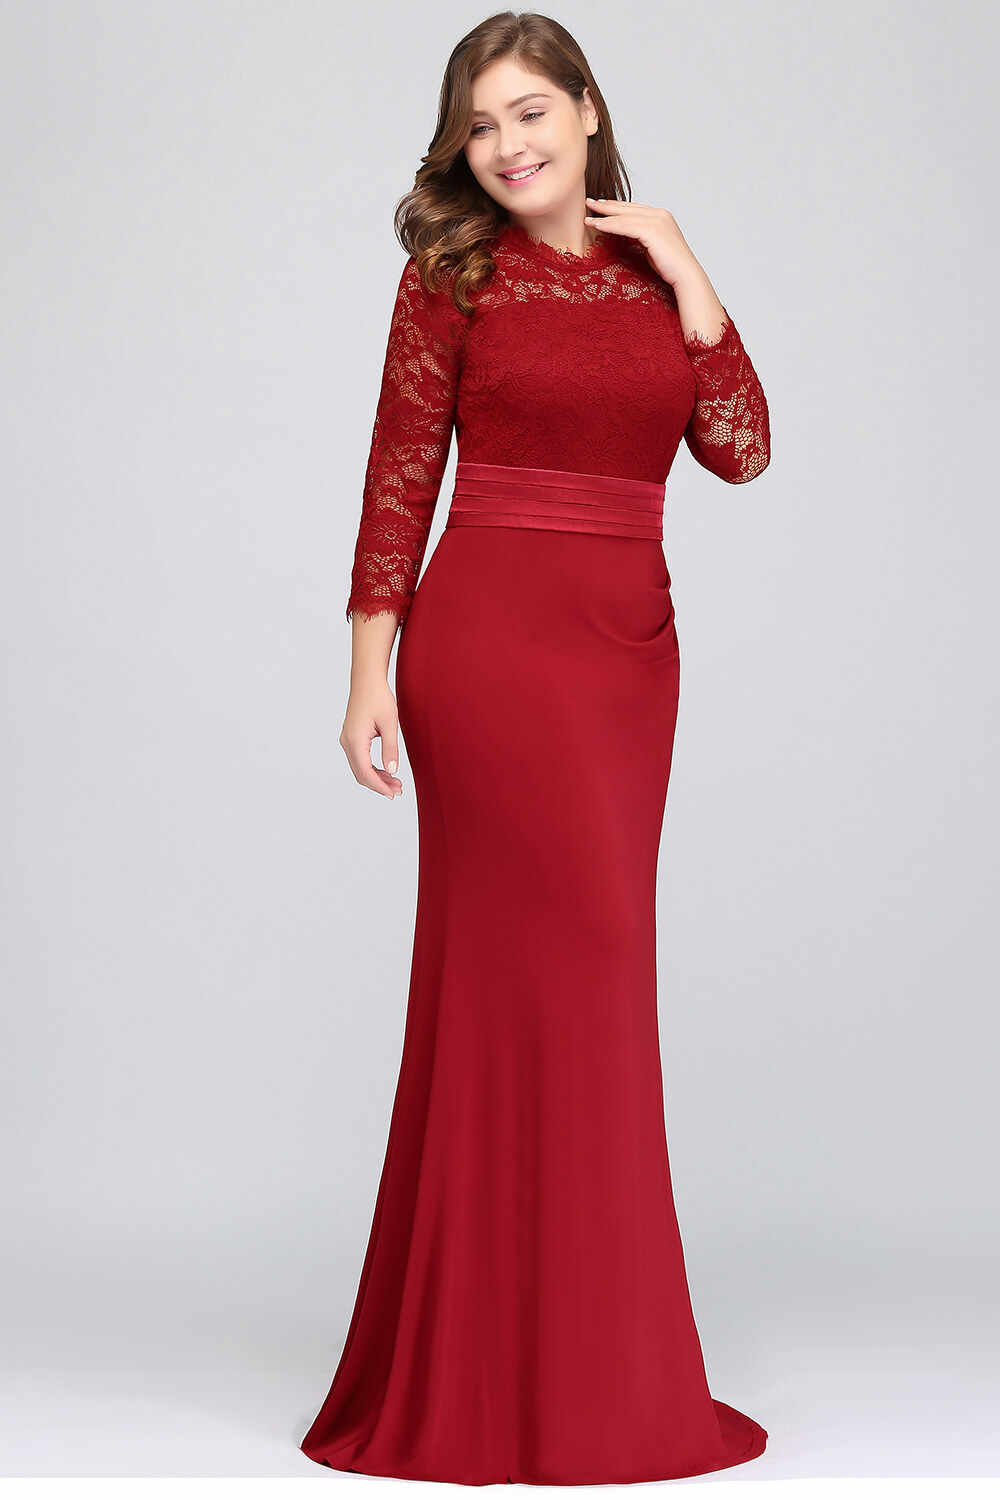 f64b295b78392 Plus Size Lace Mermaid Long Evening Dress Elegant Three Quarter Sleeve  Evening Gowns with Sashes Abendkleider Robe de Soiree